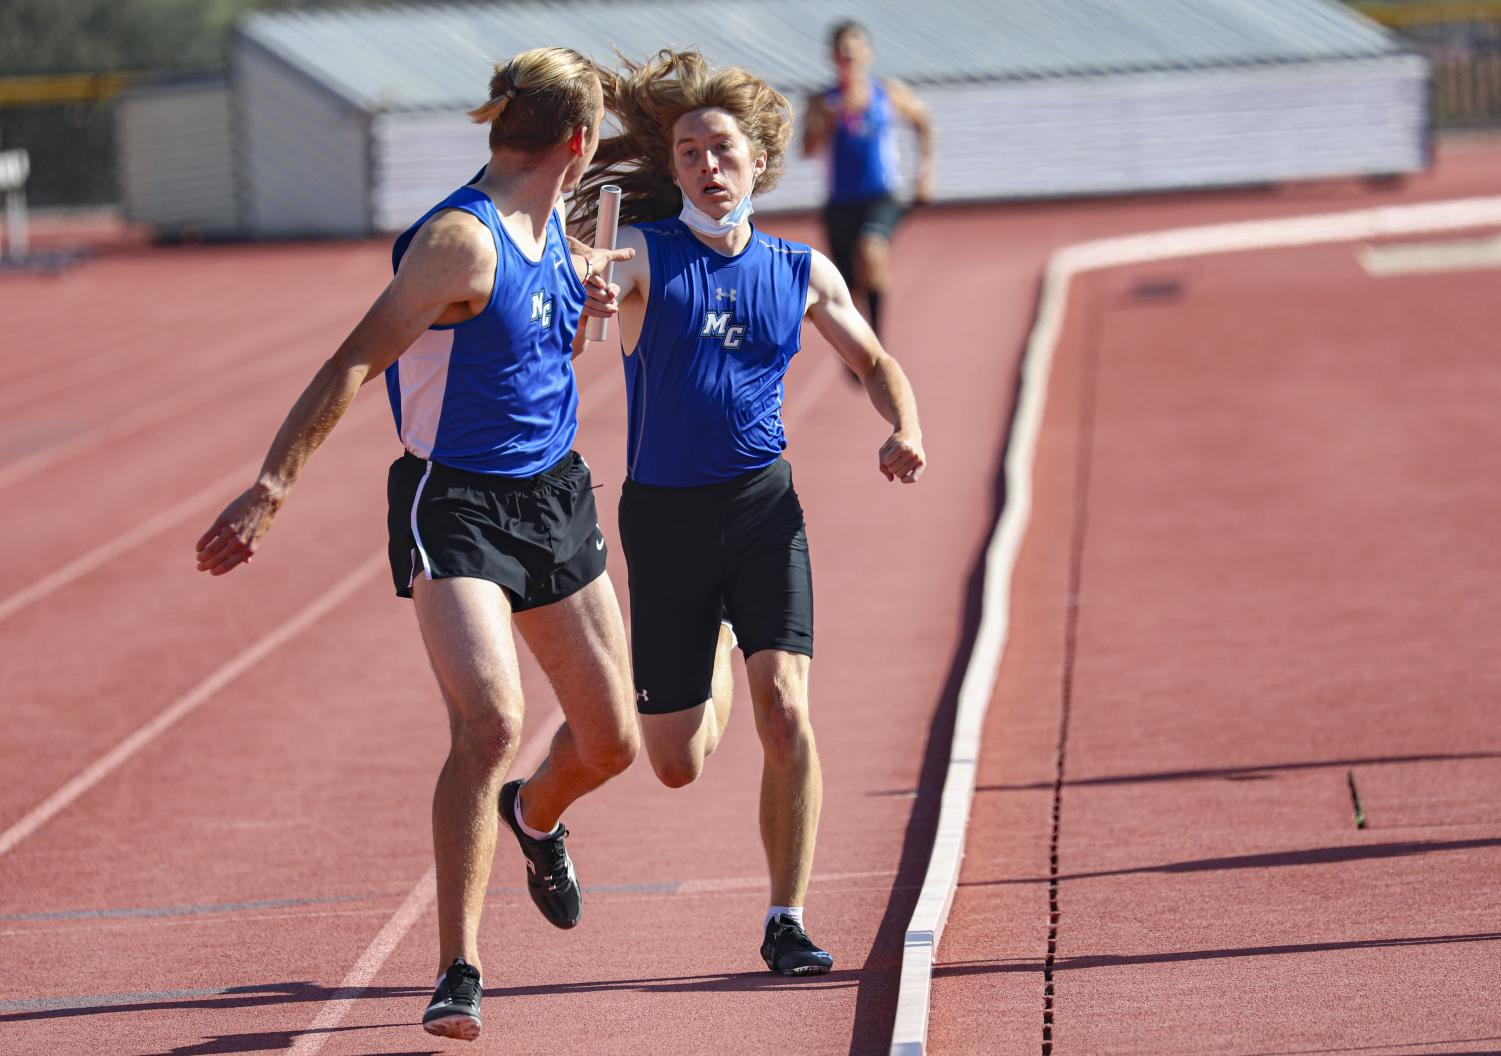 James Boss passes the baton to Zach Leith during the 4x400 meter relay at the first WSC meet of the season on Friday, April 16, 2021 in Moorpark, CA.